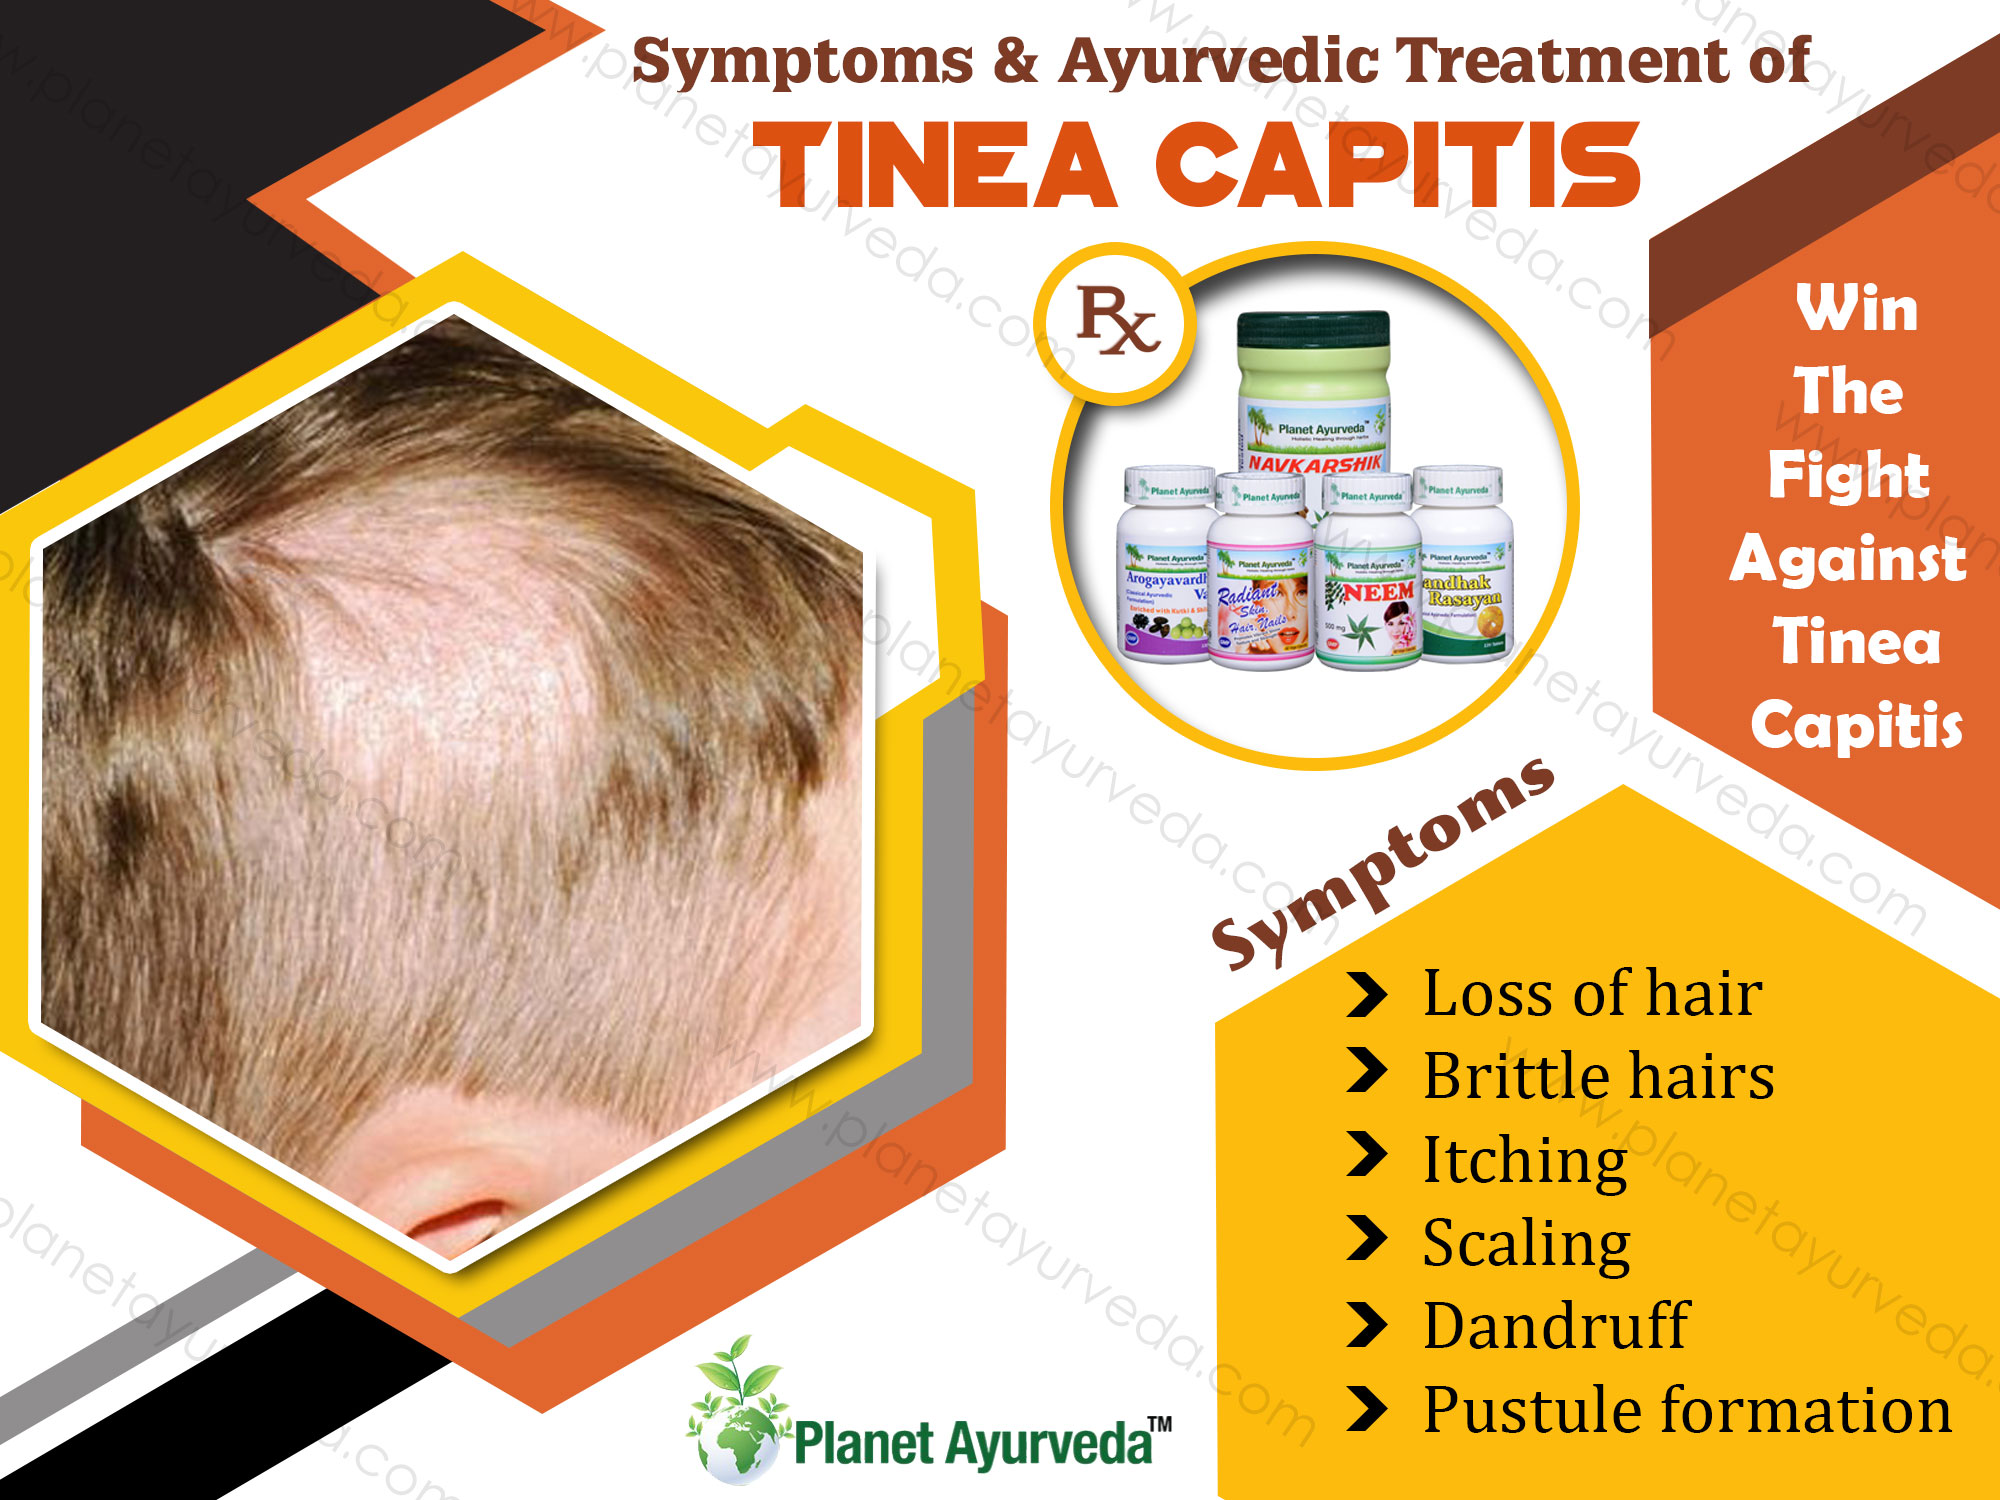 Symptoms-&-Treatment-Tinea-Capitis